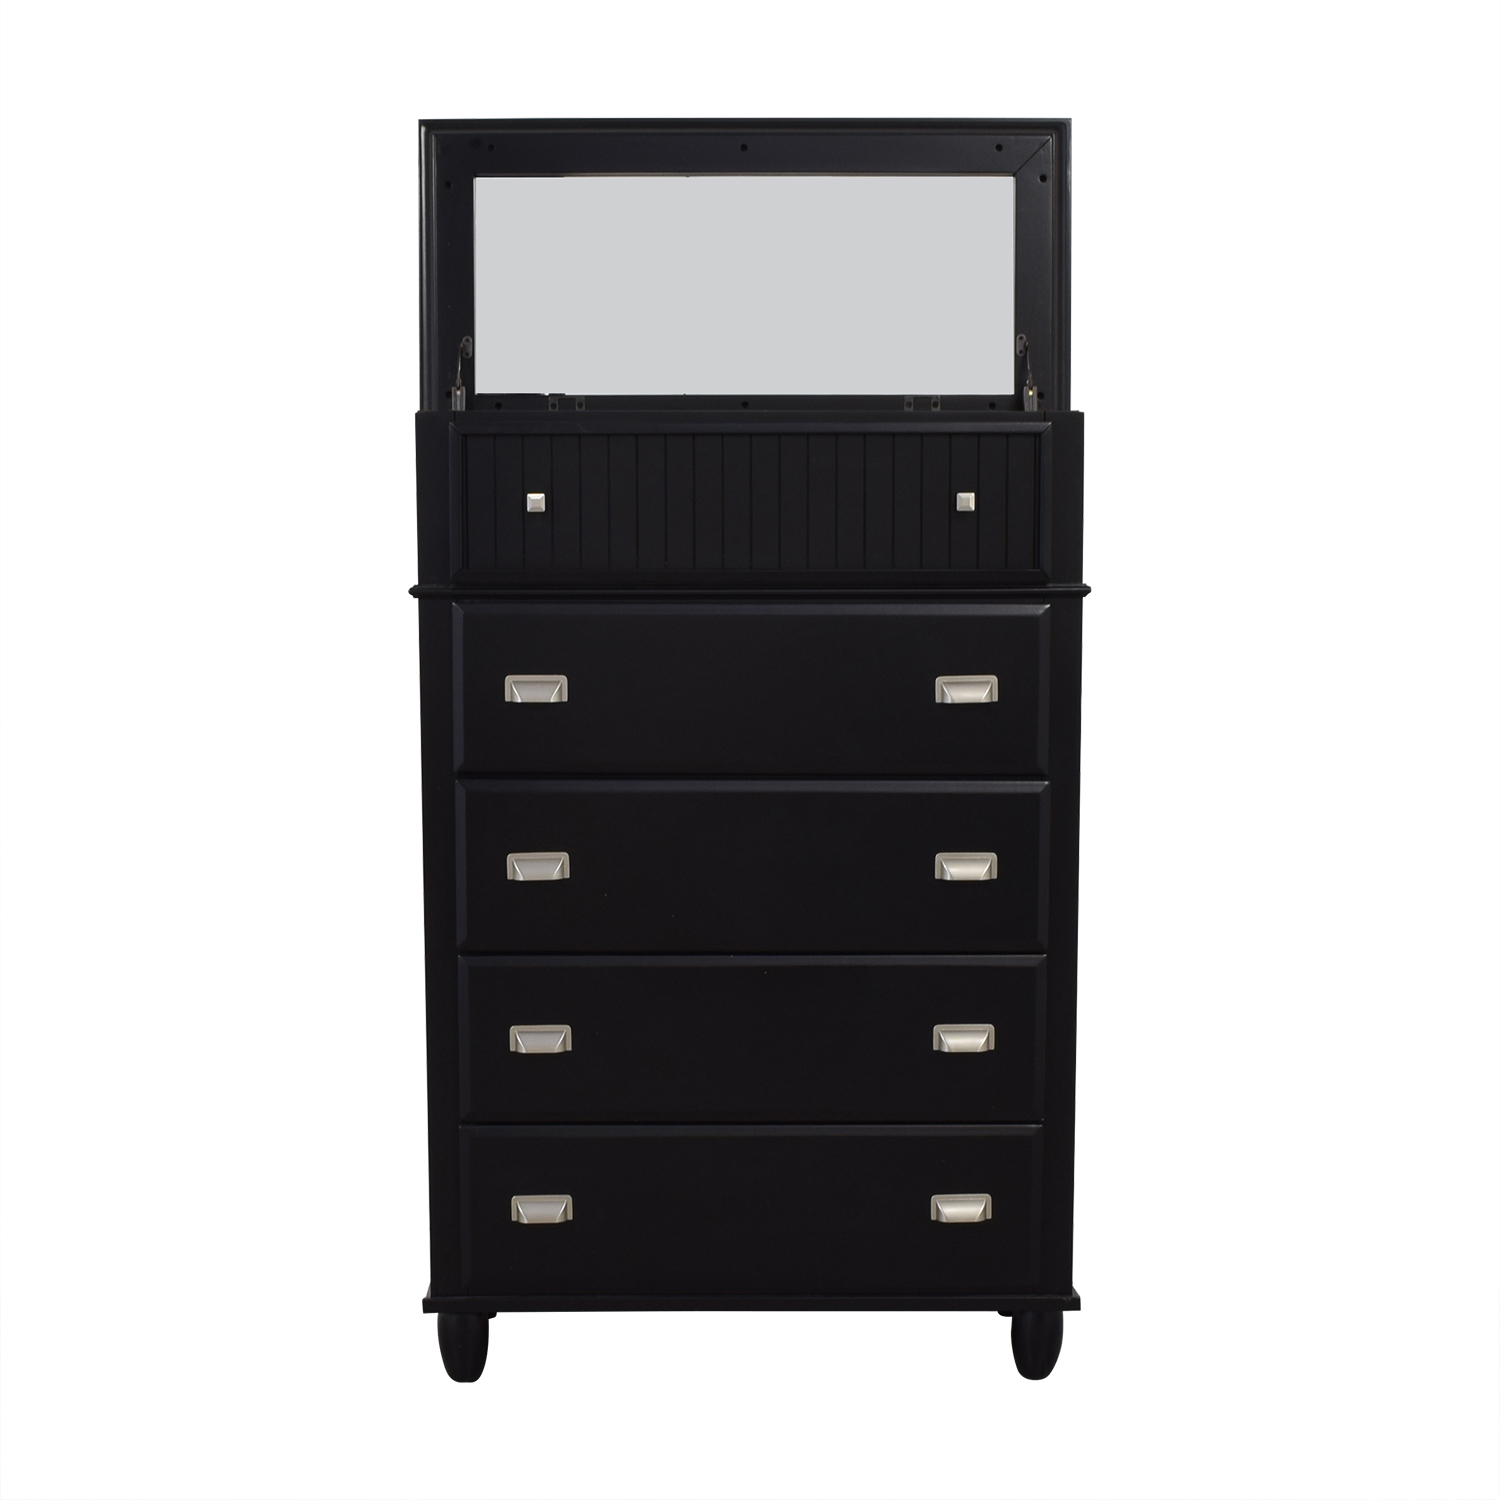 Bob's Furniture Black Spencer Lift-Top Chest with Mirror / Storage